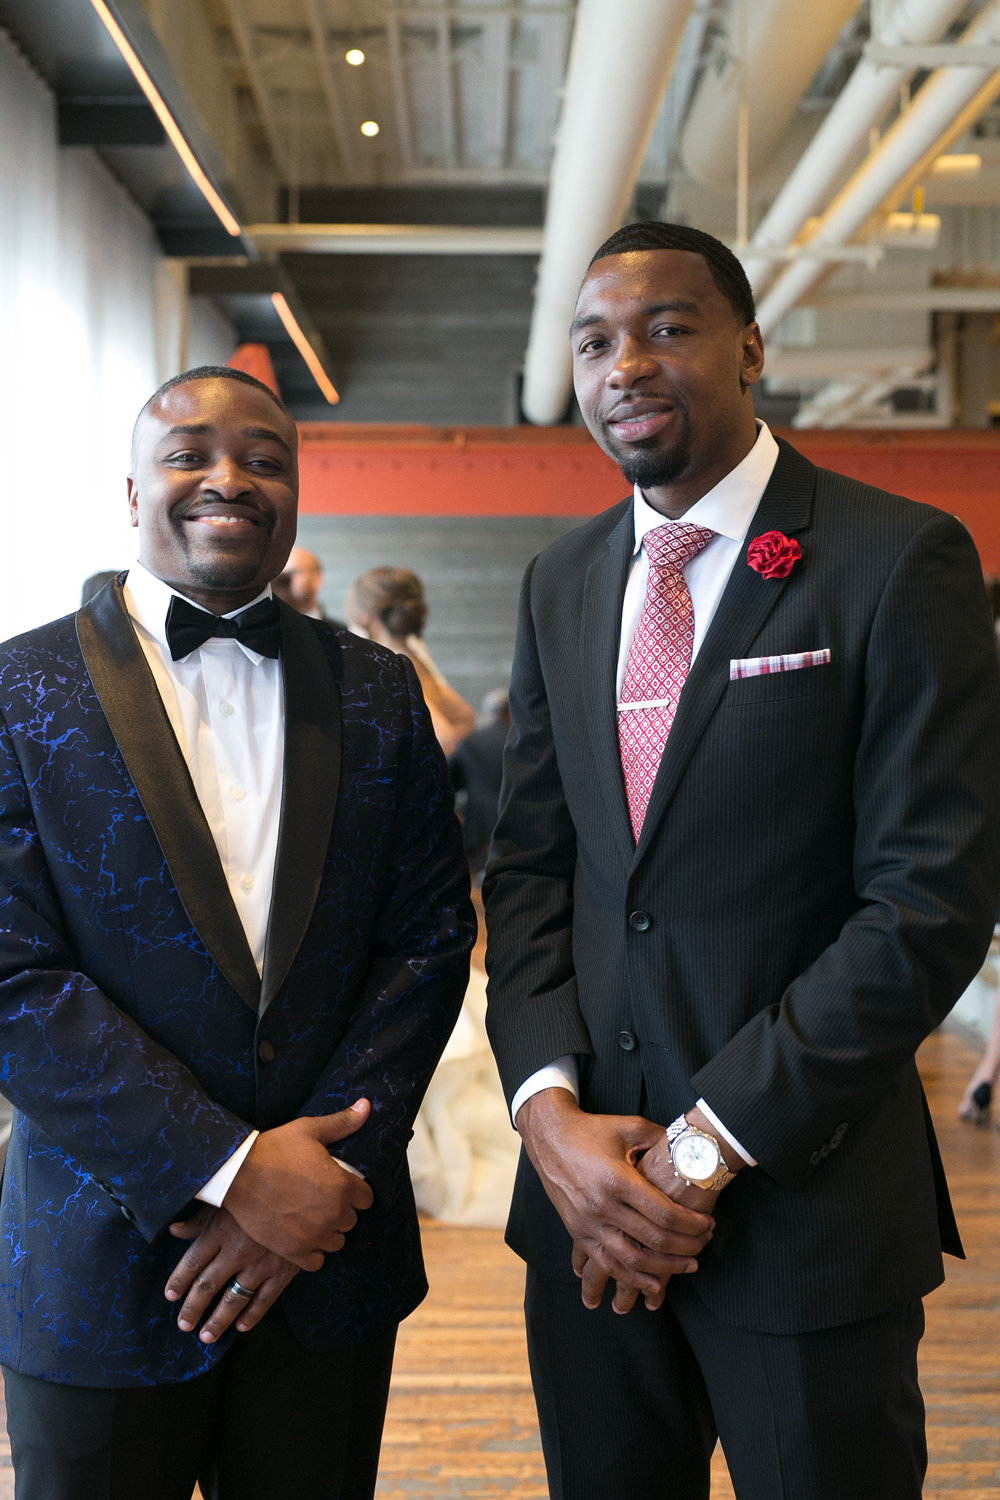 dapper wedding guests in suits | Alice HQ Photography | Machine Shop Minneapolis | Sixpence Events and Planning wedding planner.JPG